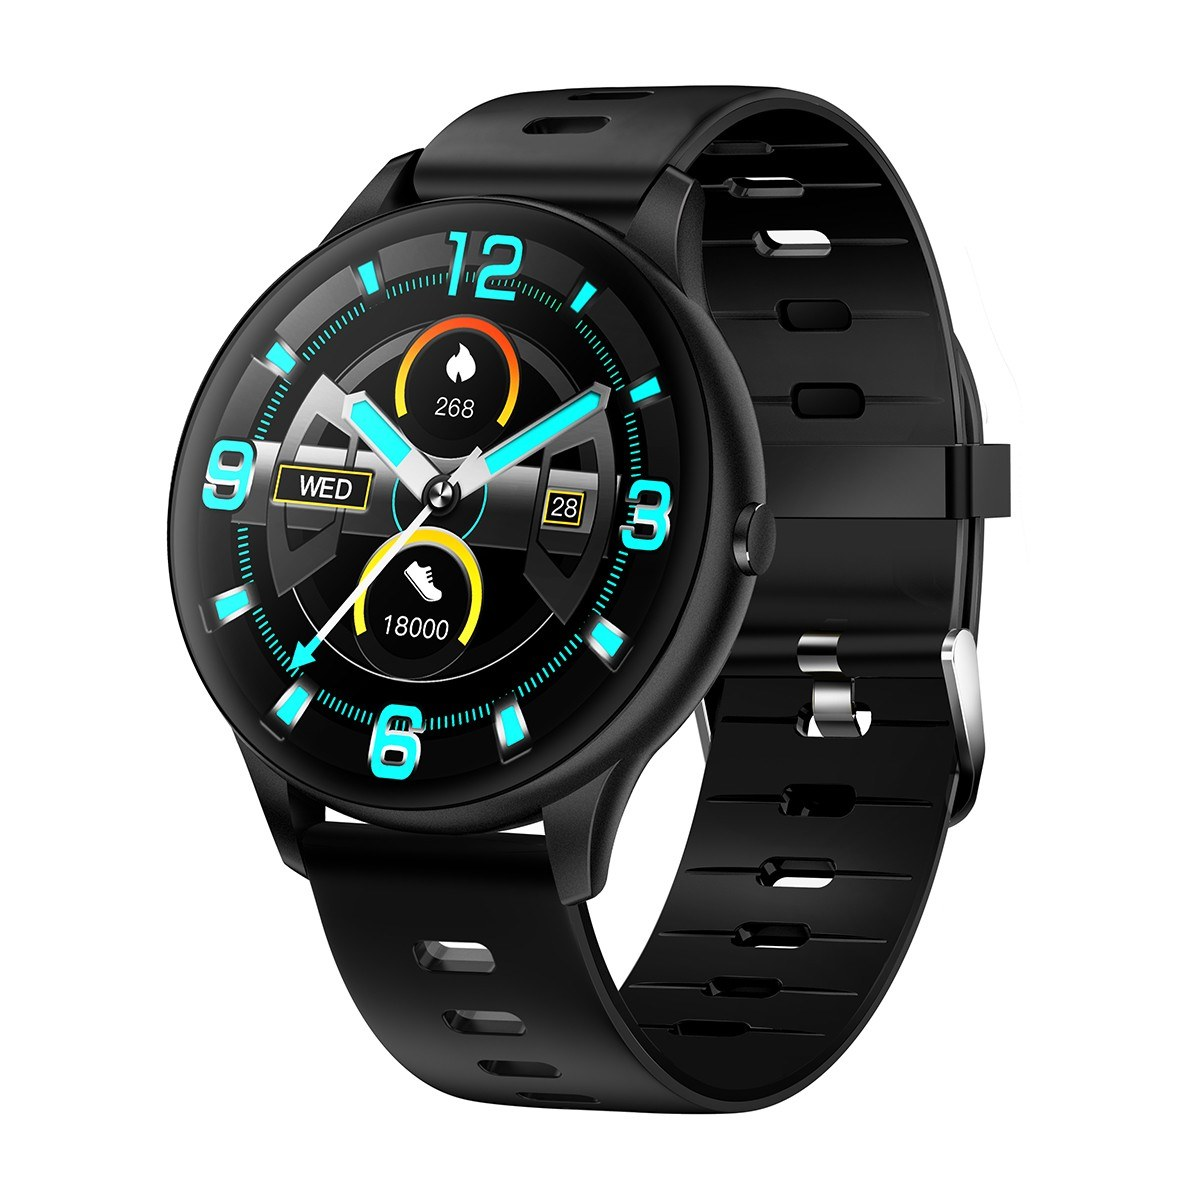 tomtop.com - 56% OFF K21 1.3-Inch IPS Screen Smart Watch Sports Watch, Limmited Offers $20.99